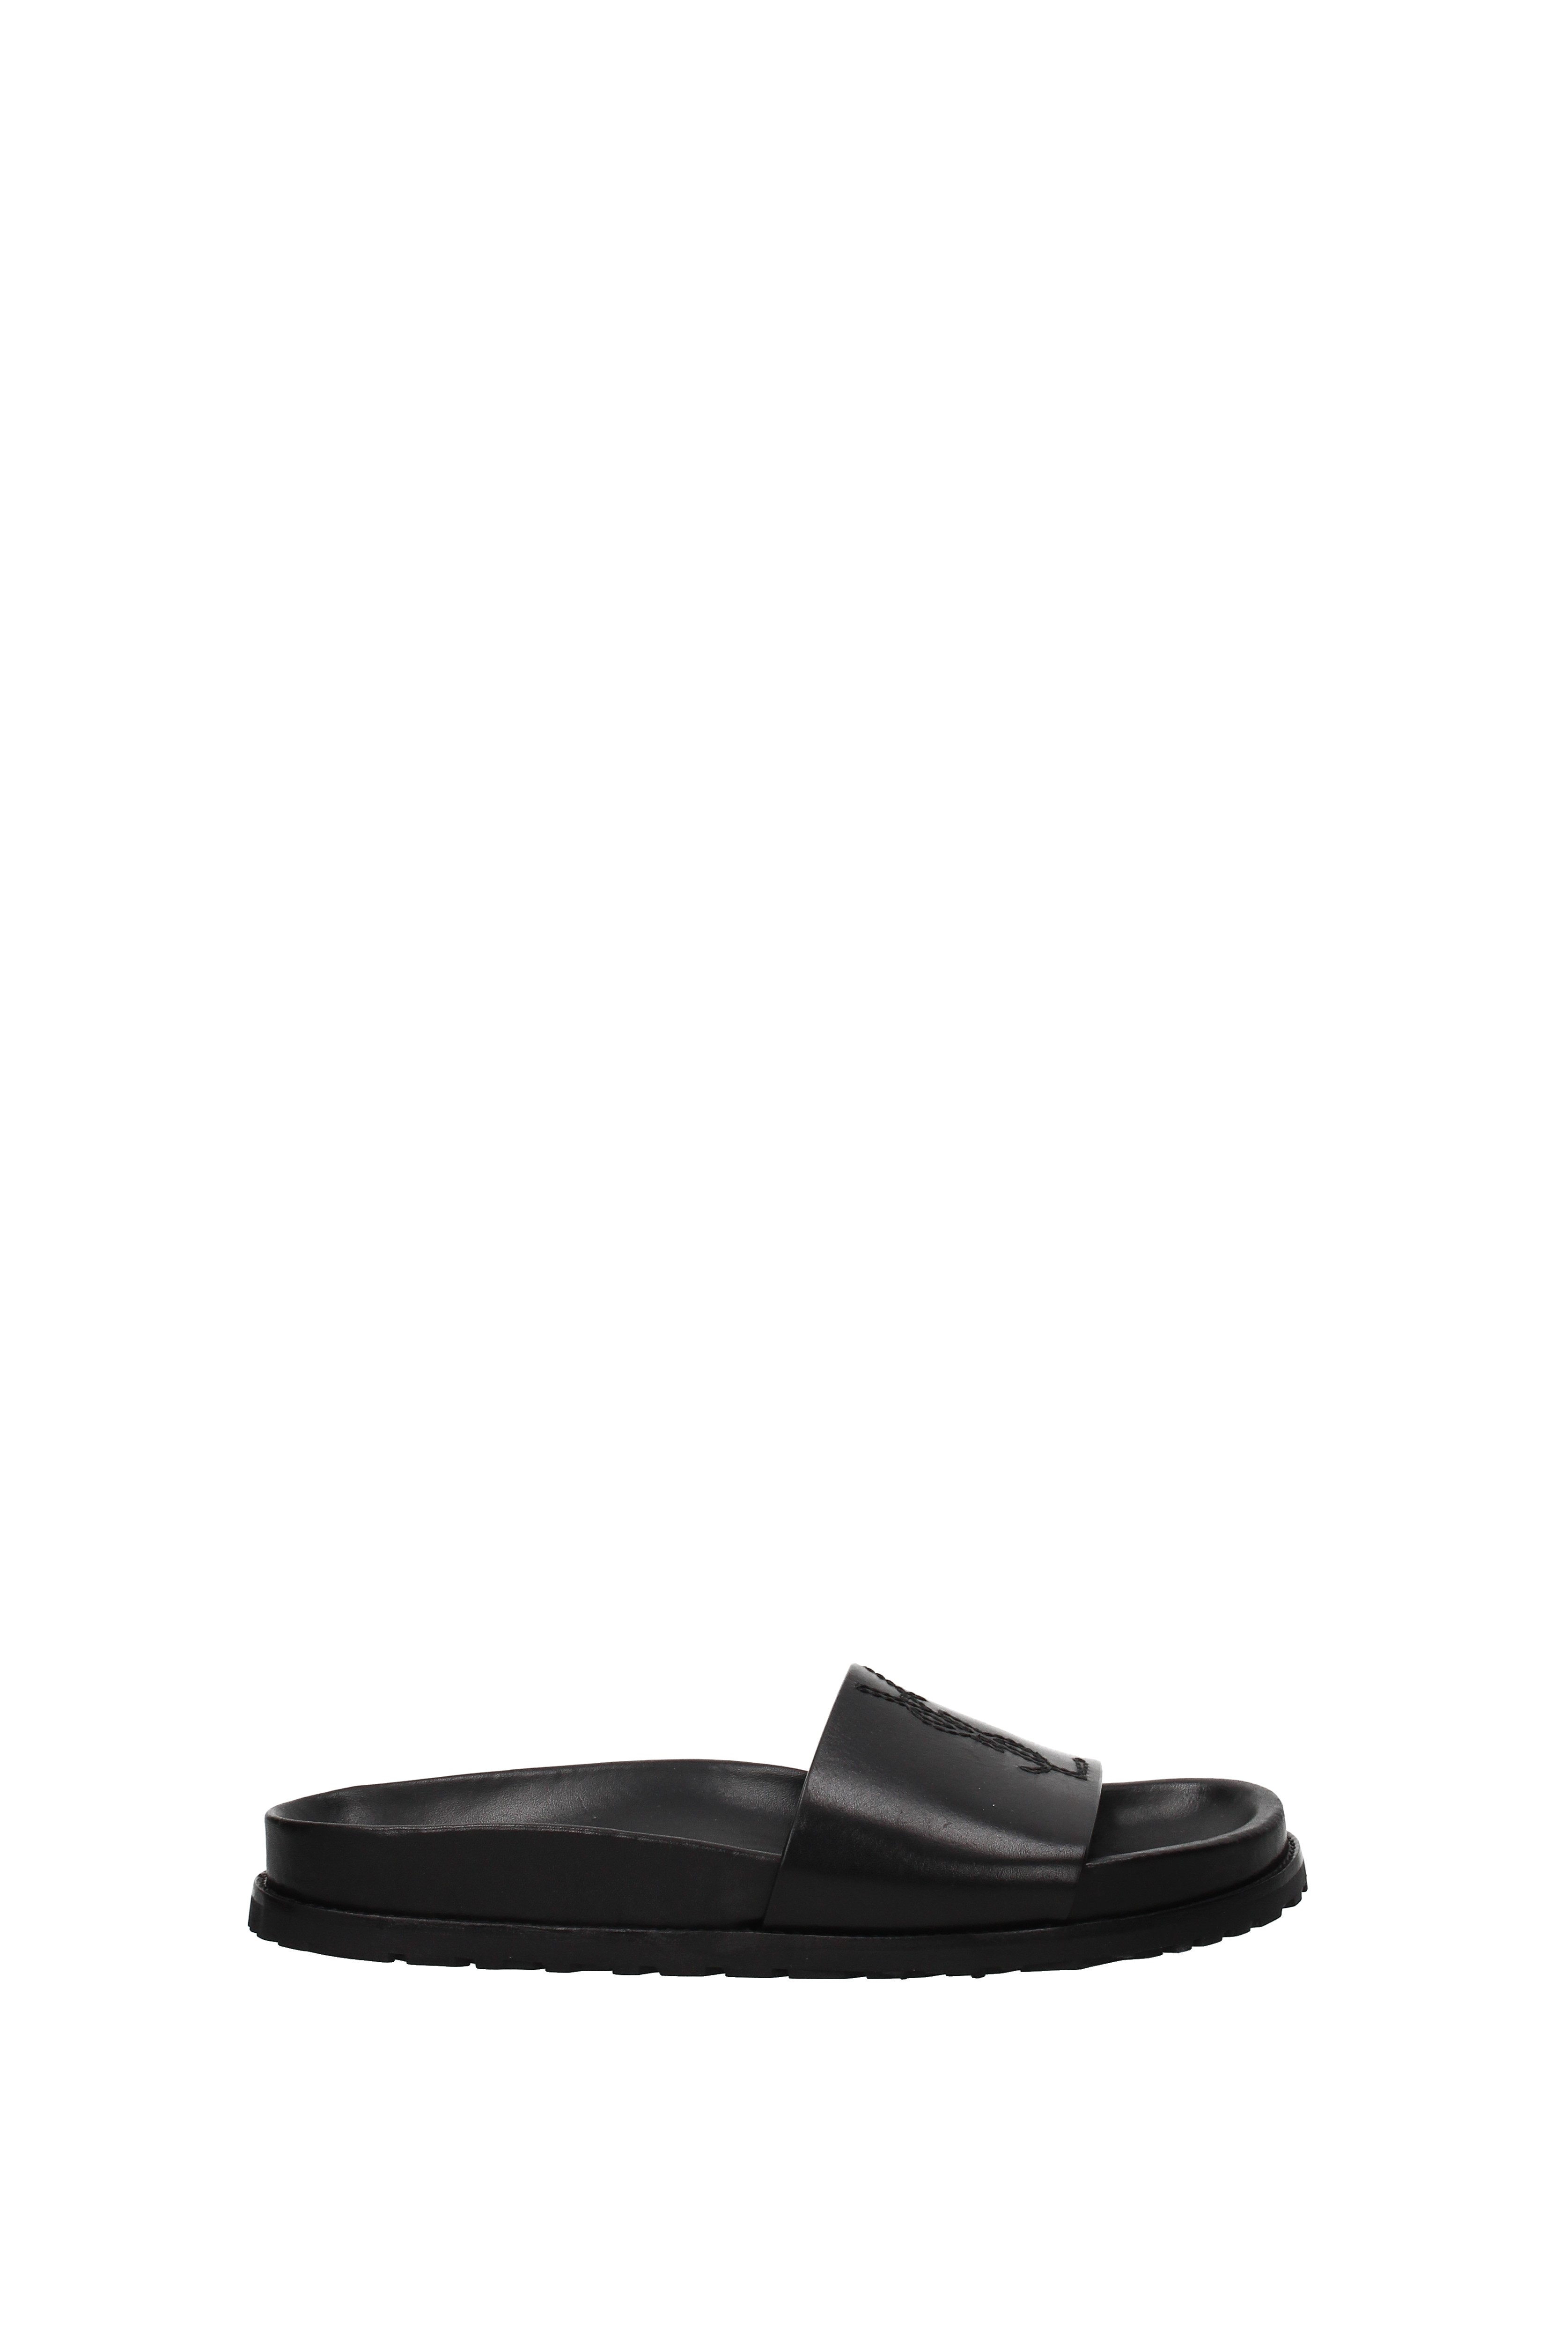 440b31f580a4 Slippers and clogs Saint Laurent jimmy Women - Leather (500220DWE00 ...